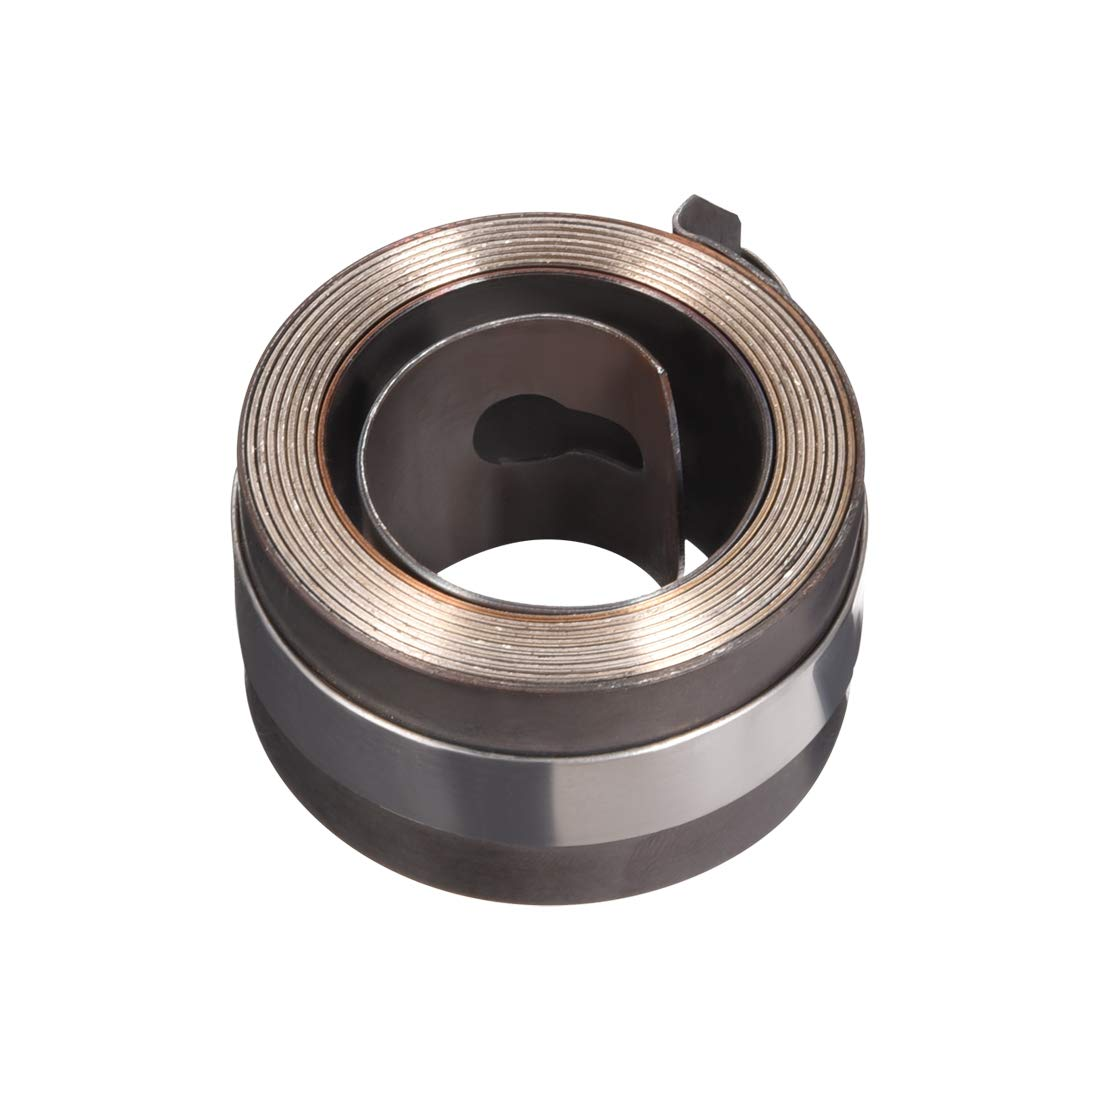 uxcell Drill Press Spring, Quill Feed Return Coil Spring Assembly, 3.6Ft Long, 44 x 25 x 0.7mm